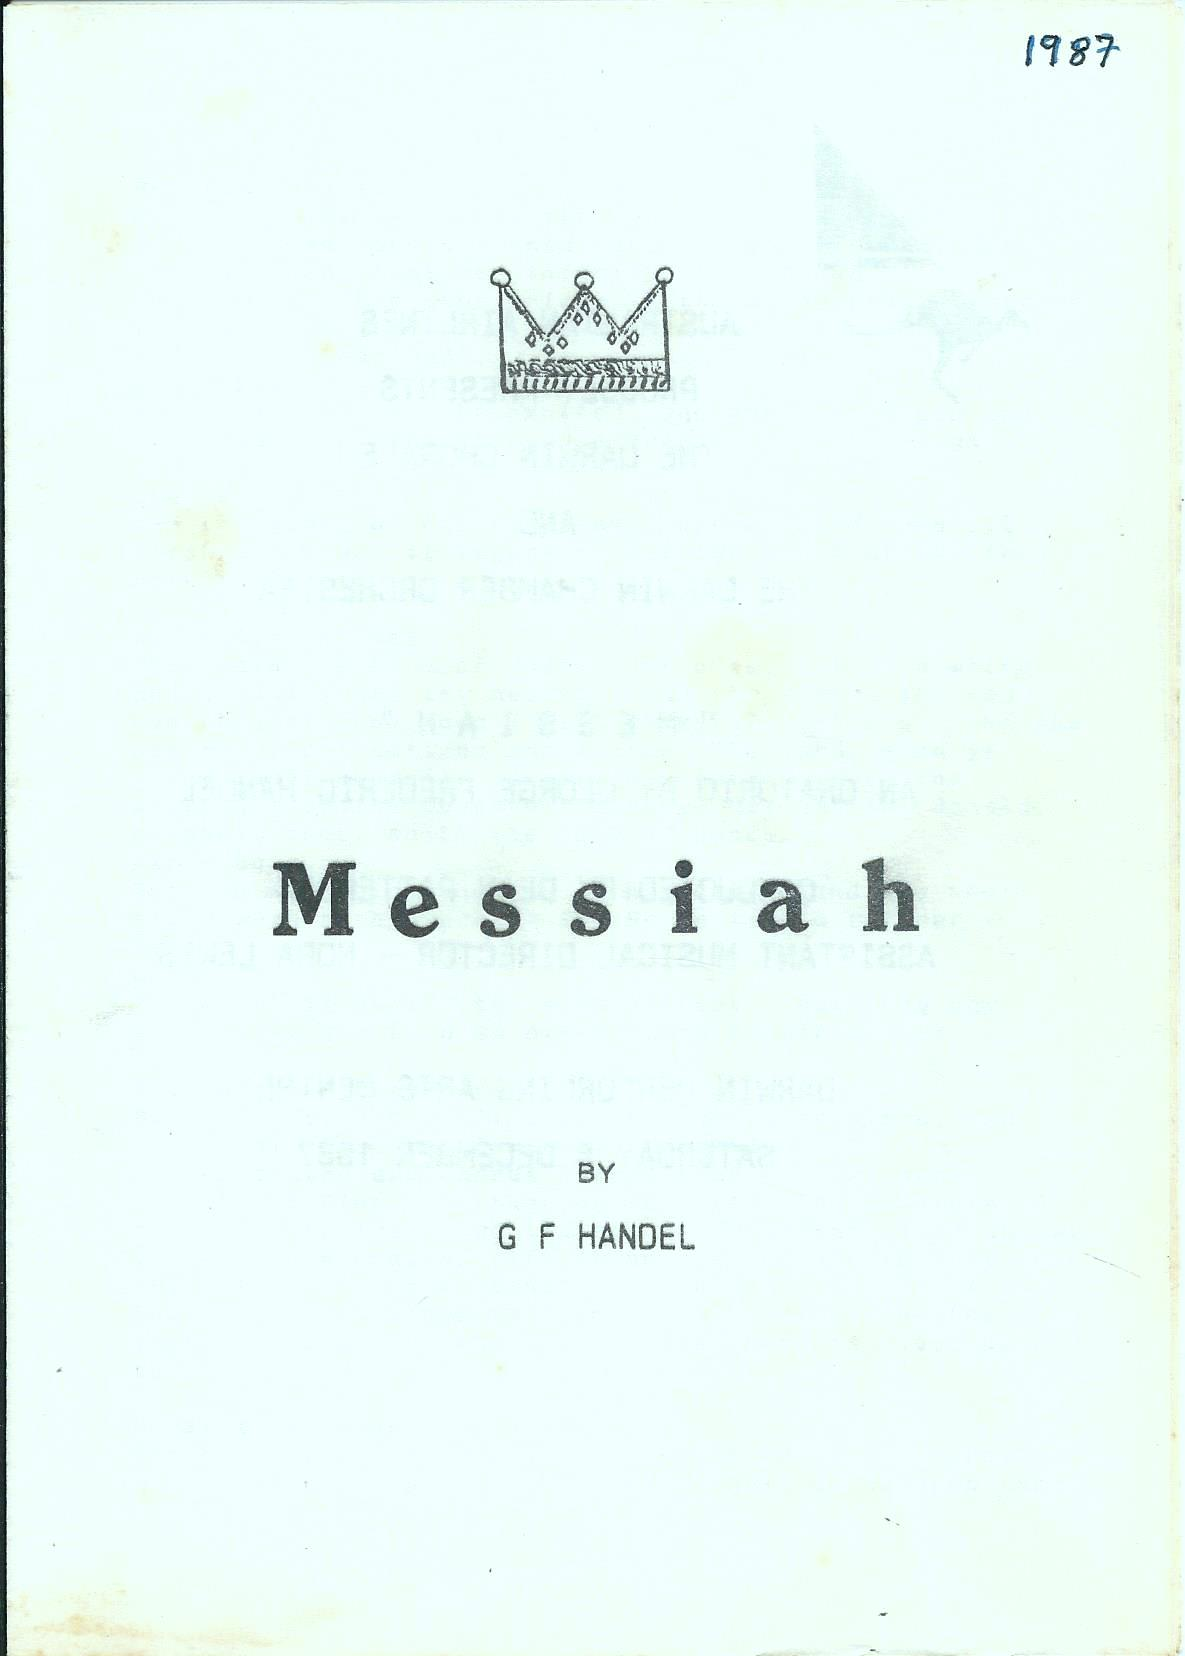 Messiah 1987